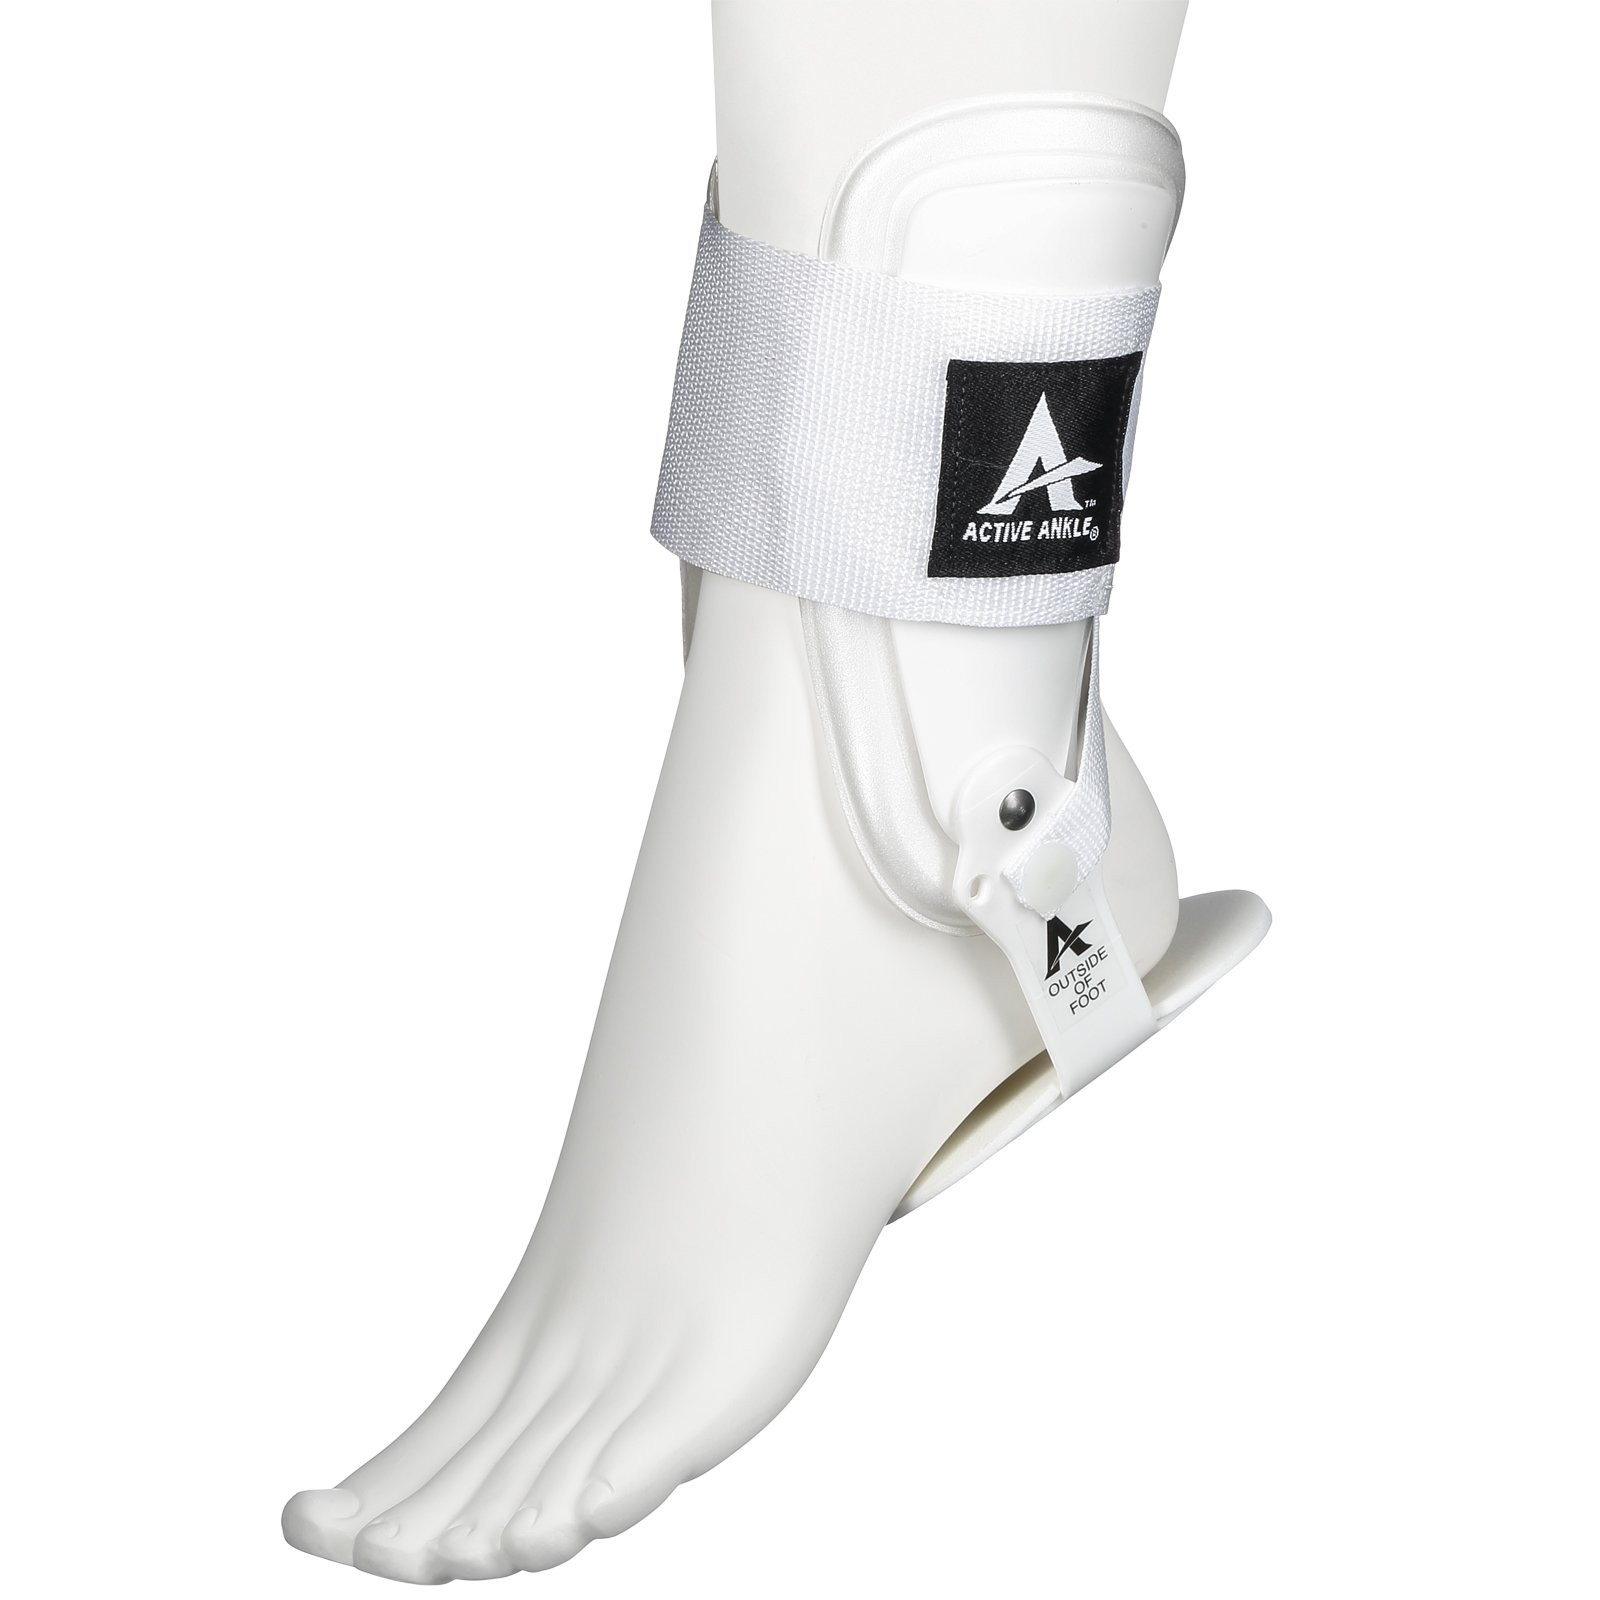 Active Ankle T2 Ankle Brace, Rigid Ankle Stabilizer for Protection & Sprain Support for Volleyball, Cheerleading, Ankle Braces to Wear Over Compression Socks or Sleeves for Stability, White, Small by Cramer (Image #1)